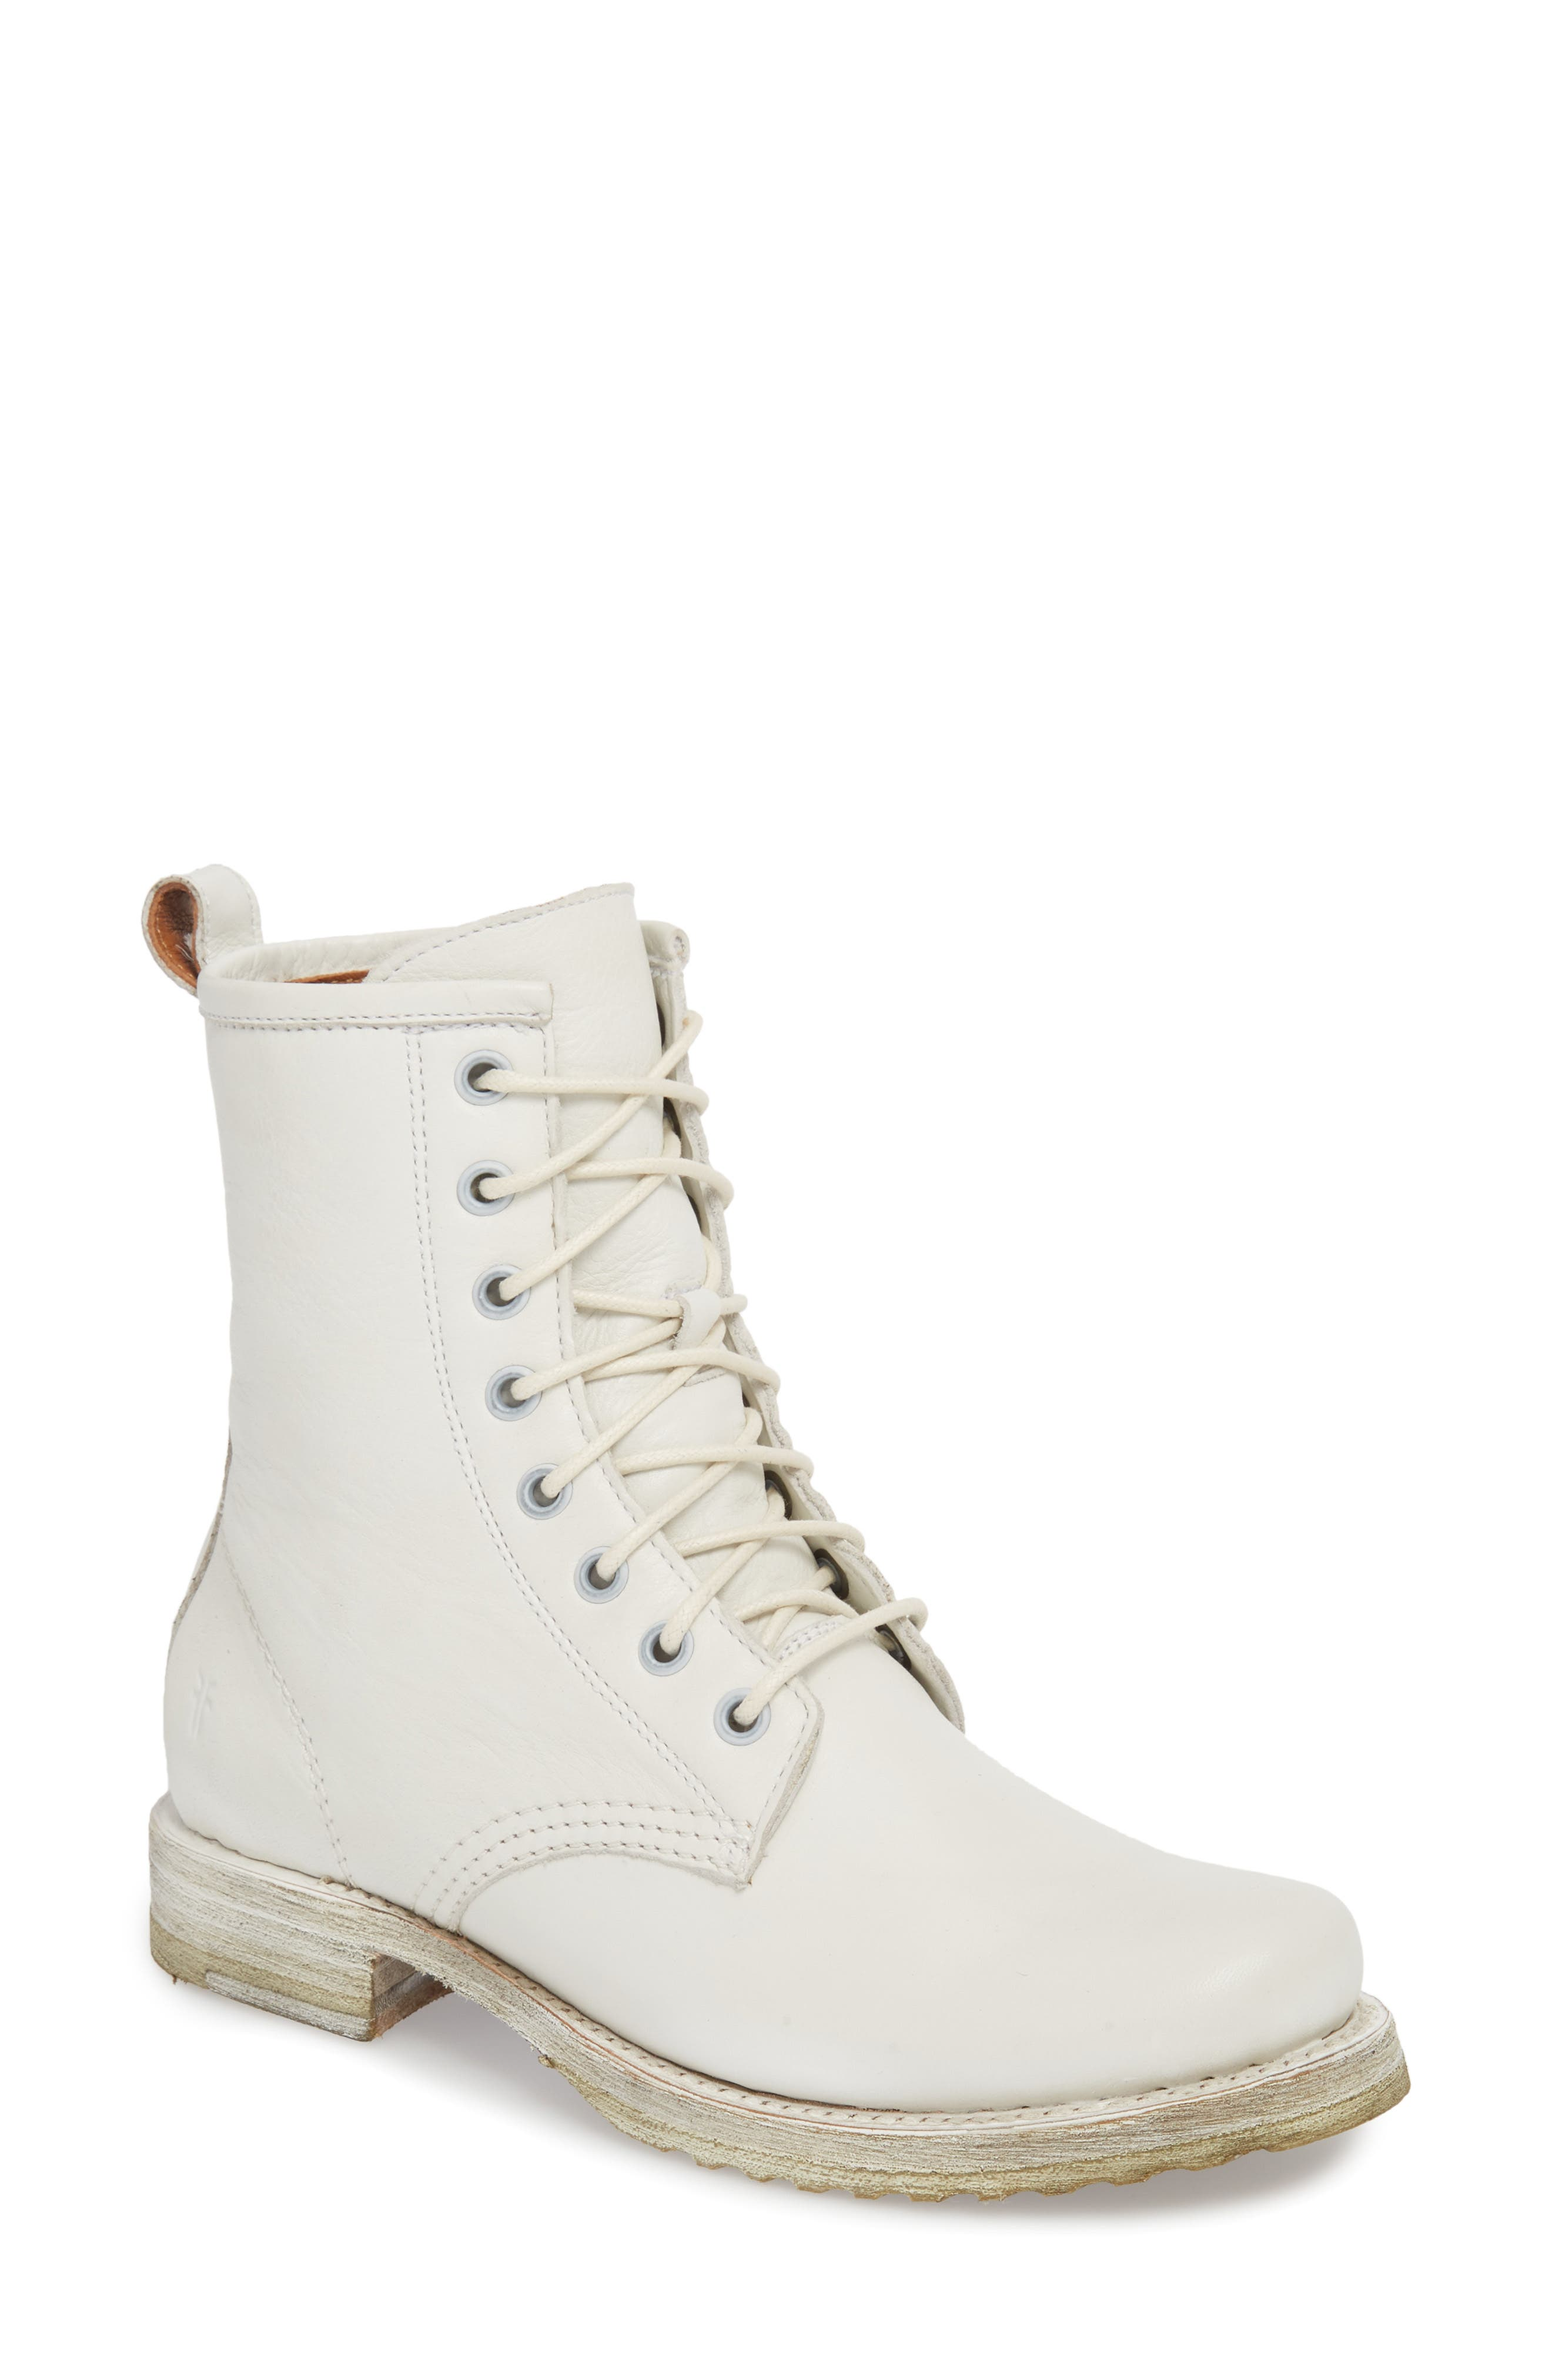 'Veronica Combat' Boot,                             Main thumbnail 1, color,                             WHITE LEATHER